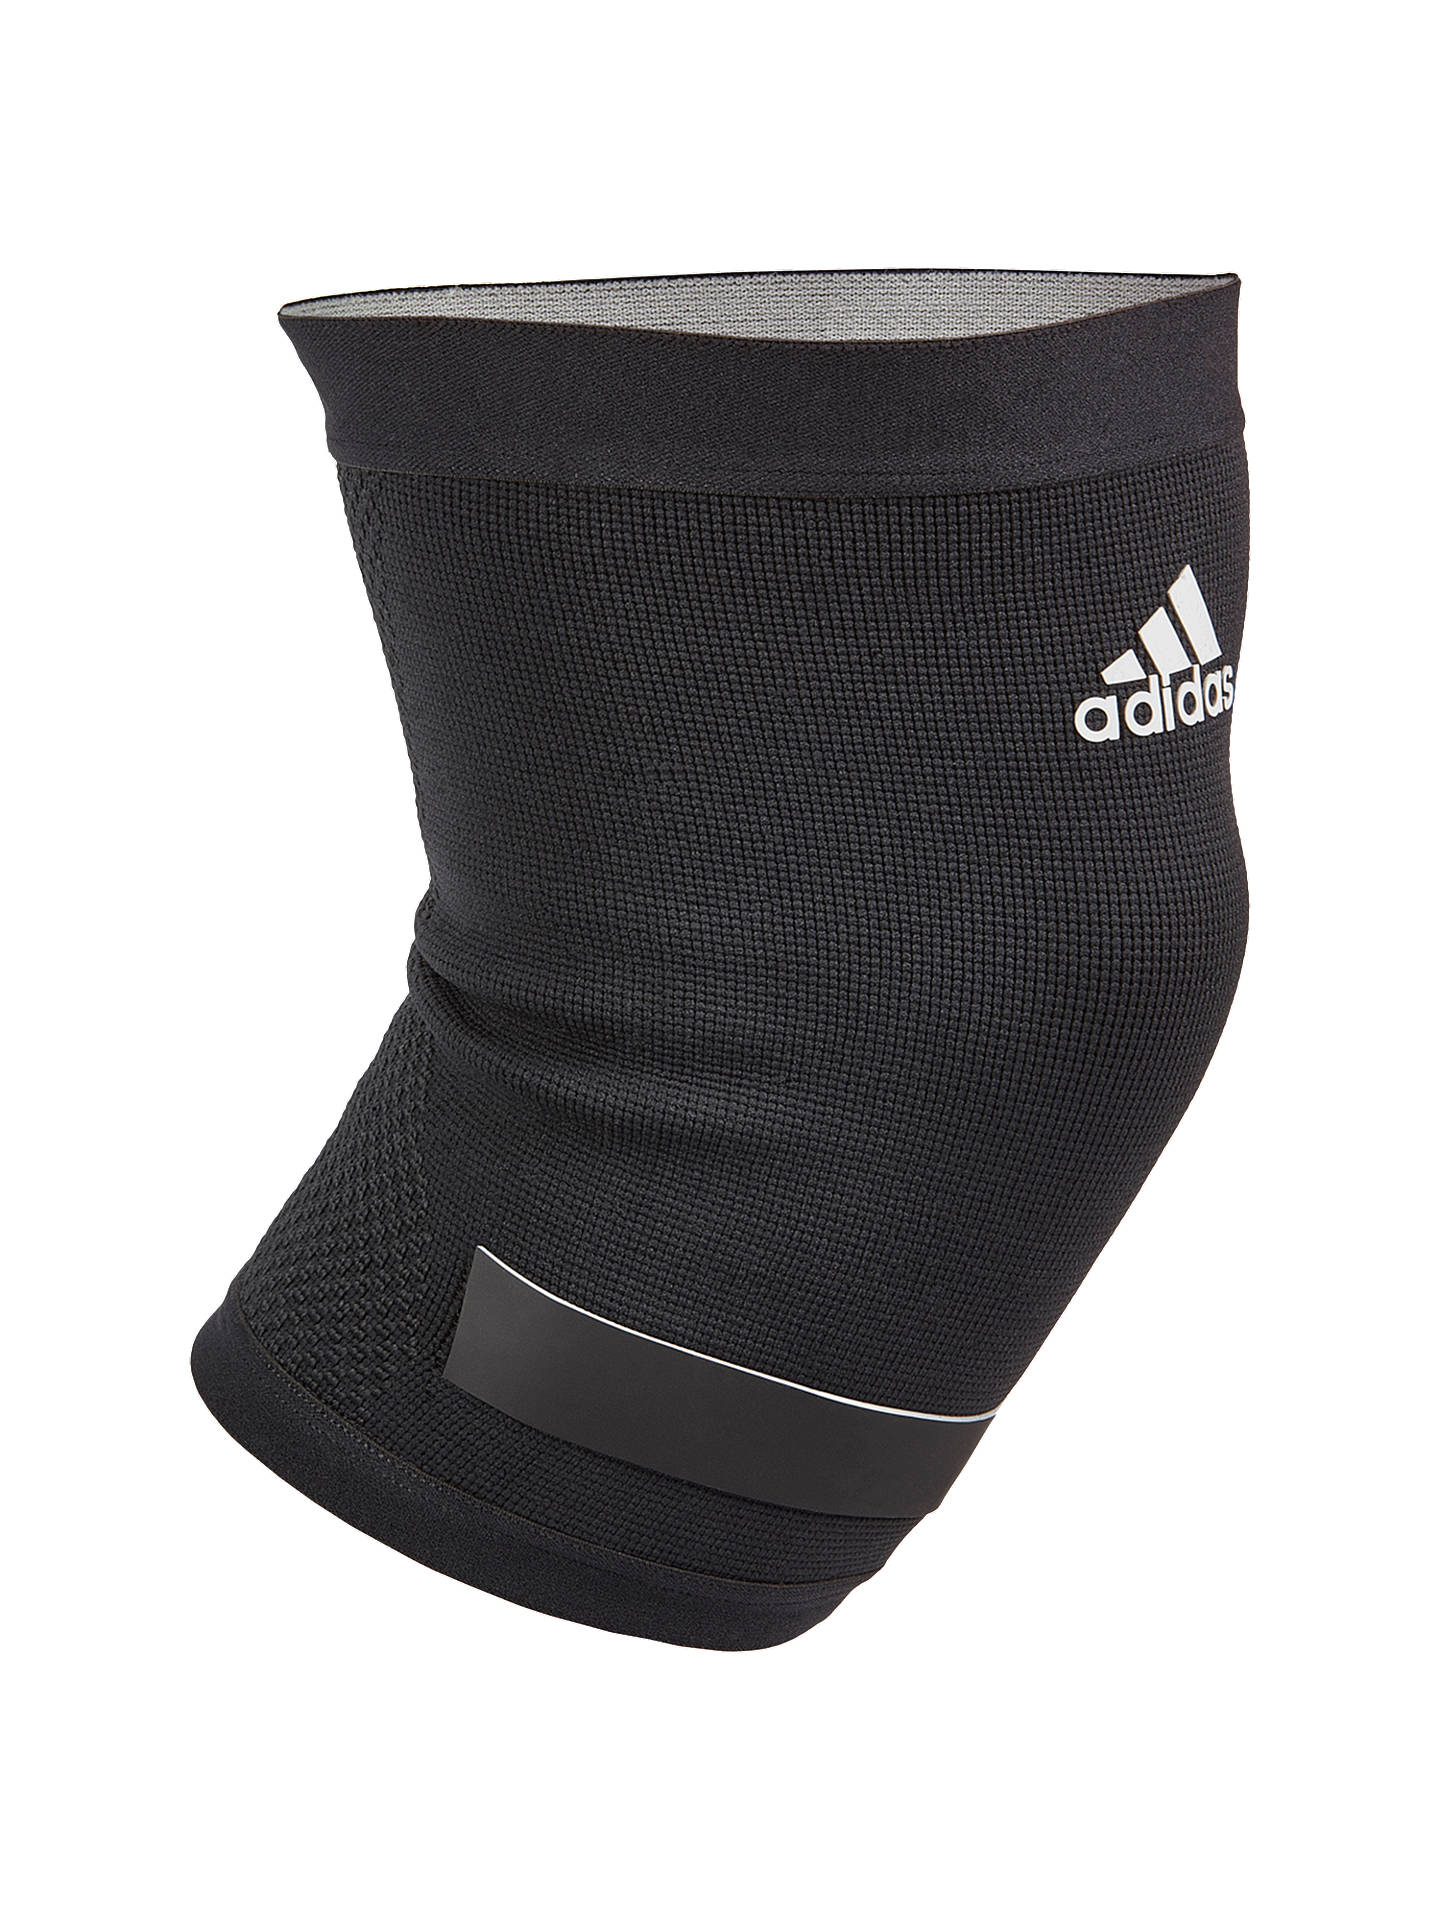 Buyadidas Knee Support Brace, Black, S Online at johnlewis.com